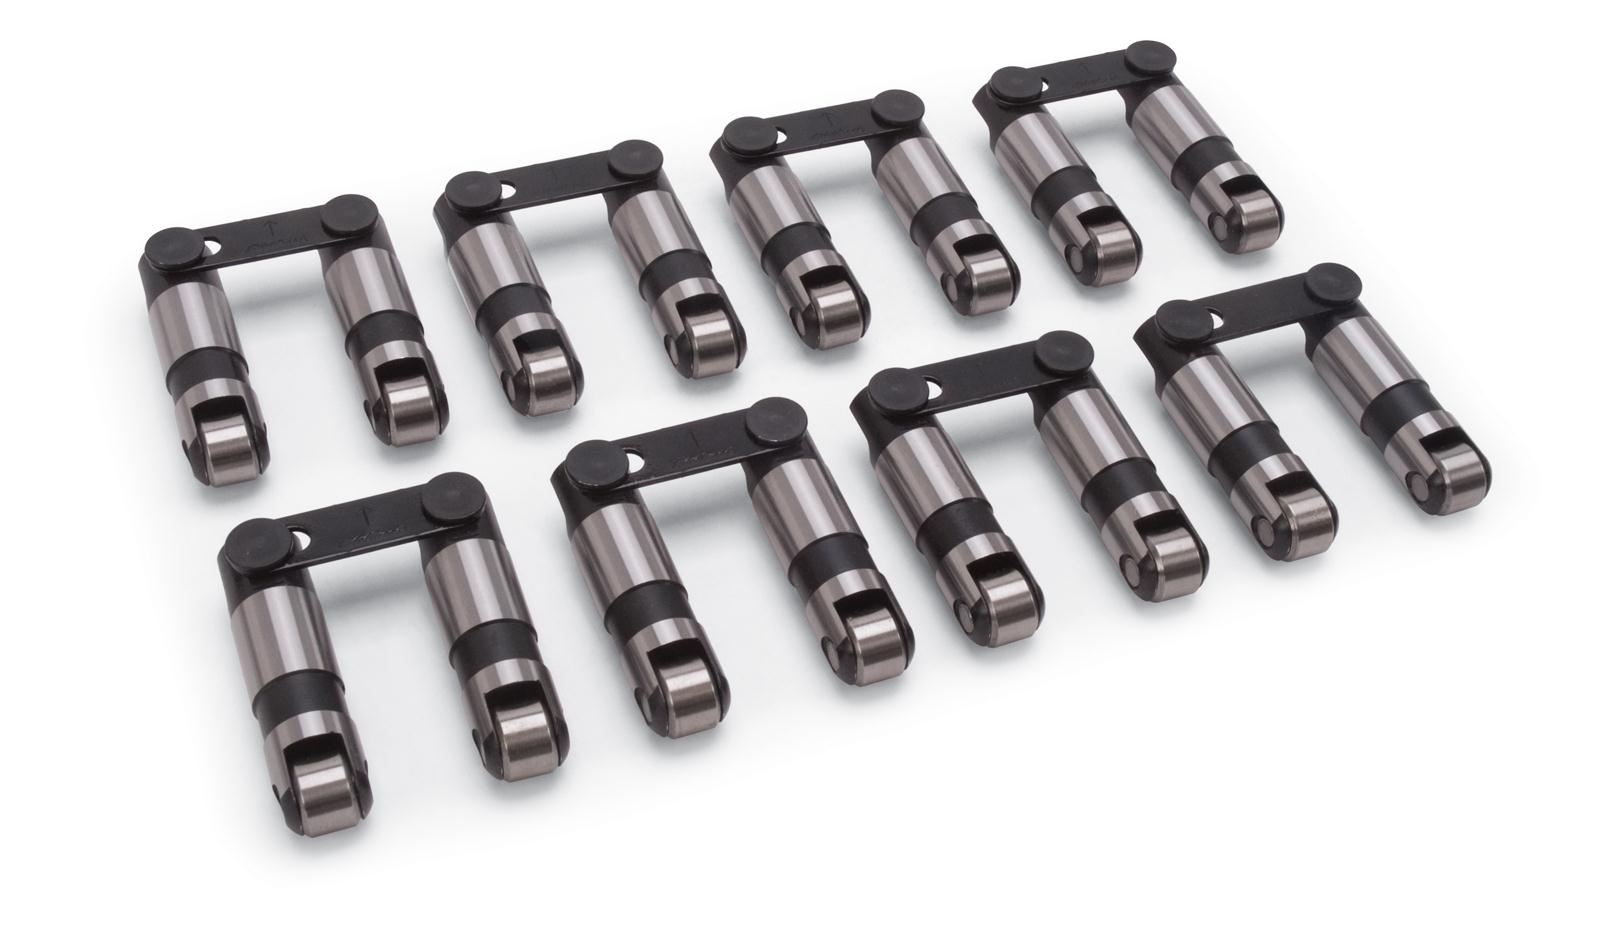 hight resolution of edelbrock hydraulic roller lifter kits 97423 free shipping on orders over 99 at summit racing